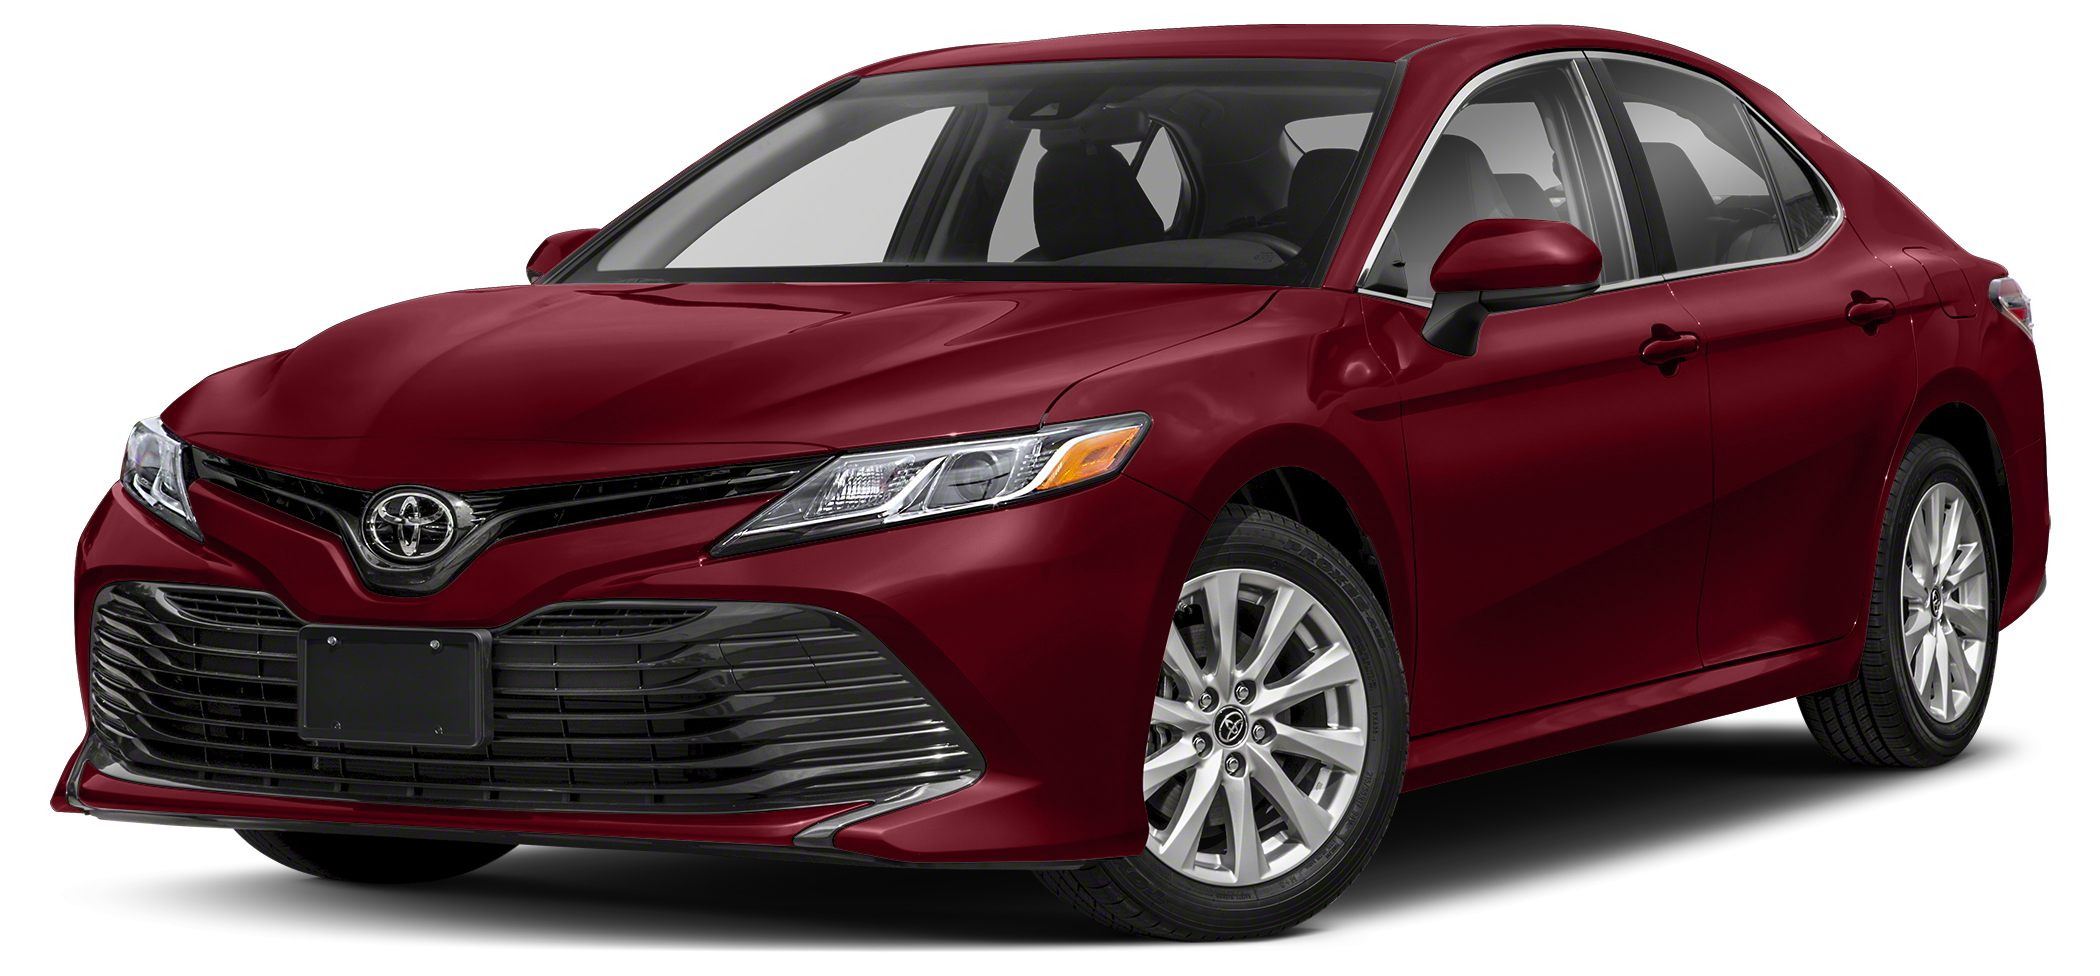 2018 Toyota Camry L L trim CELESTIAL SILVER METALLIC exterior and ASH interior EPA 41 MPG Hwy29